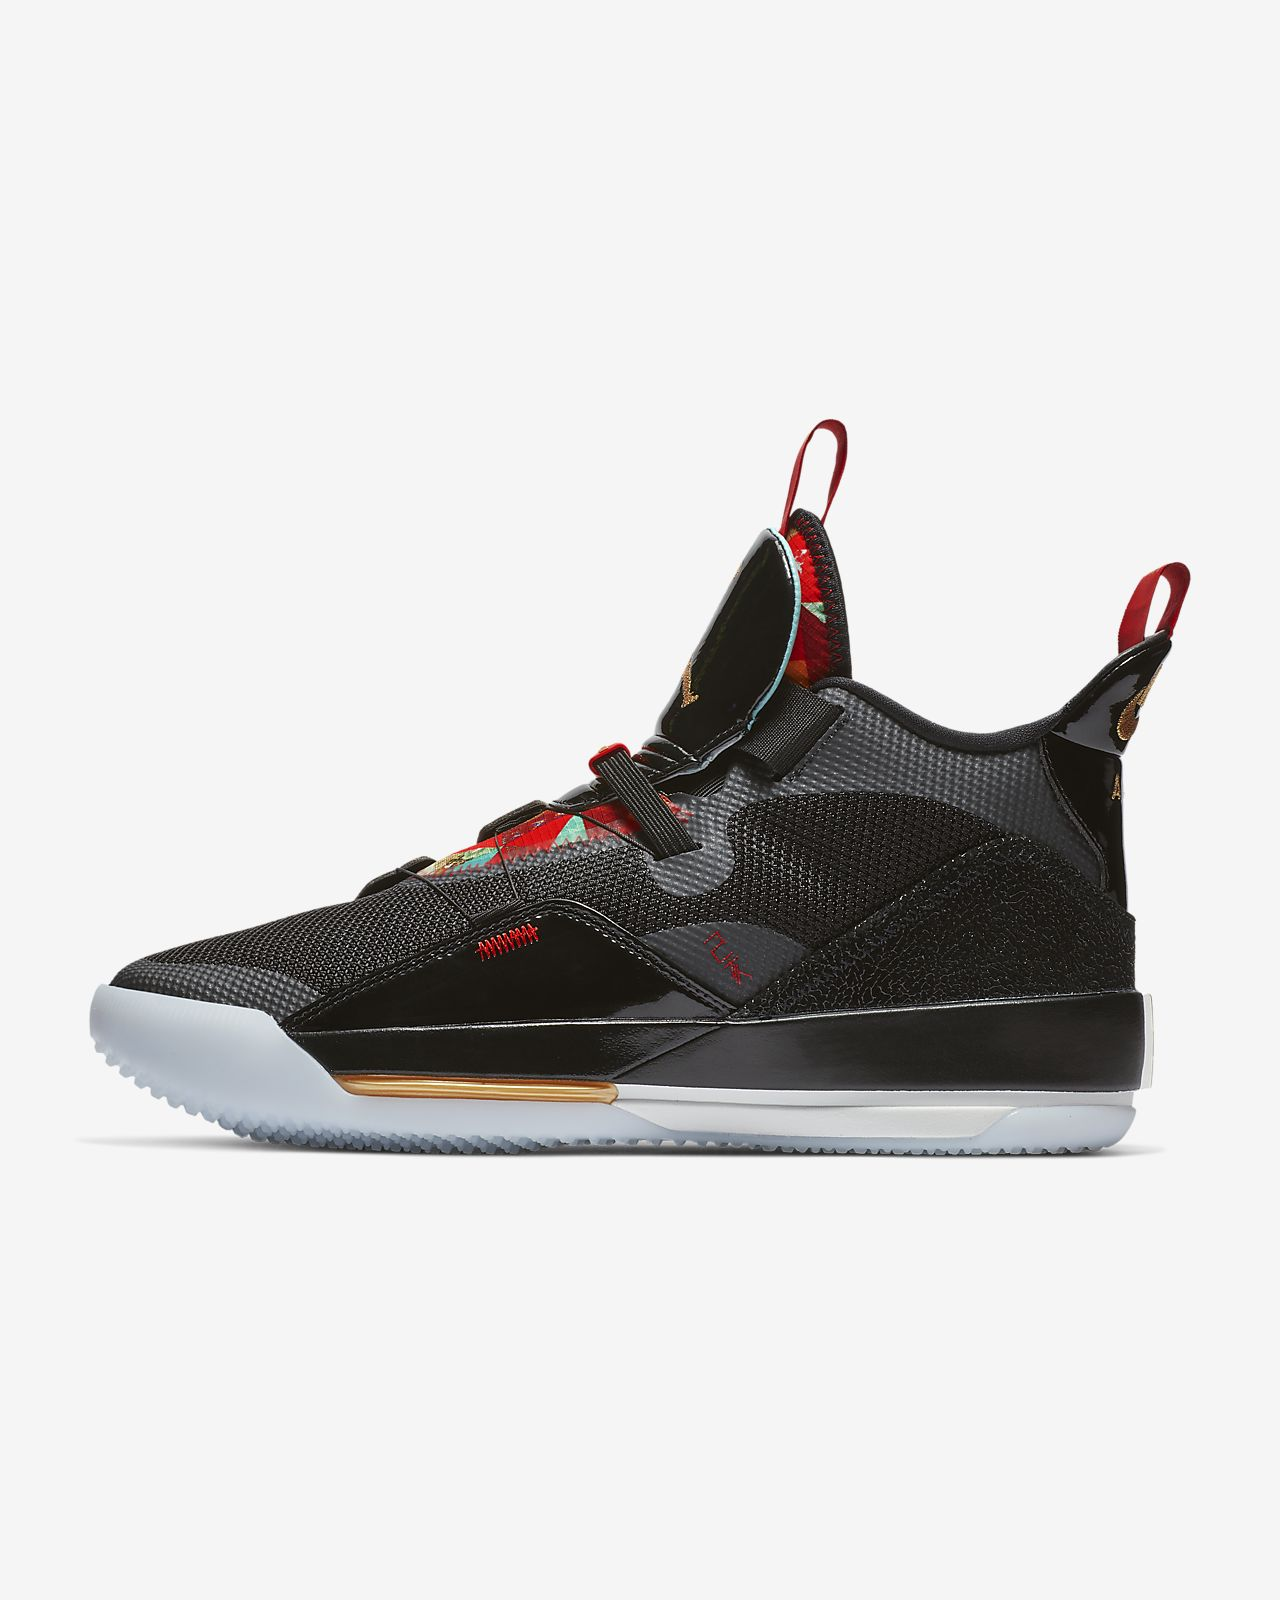 c3ab91052db087 Low Resolution Air Jordan XXXIII Basketball Shoe Air Jordan XXXIII Basketball  Shoe